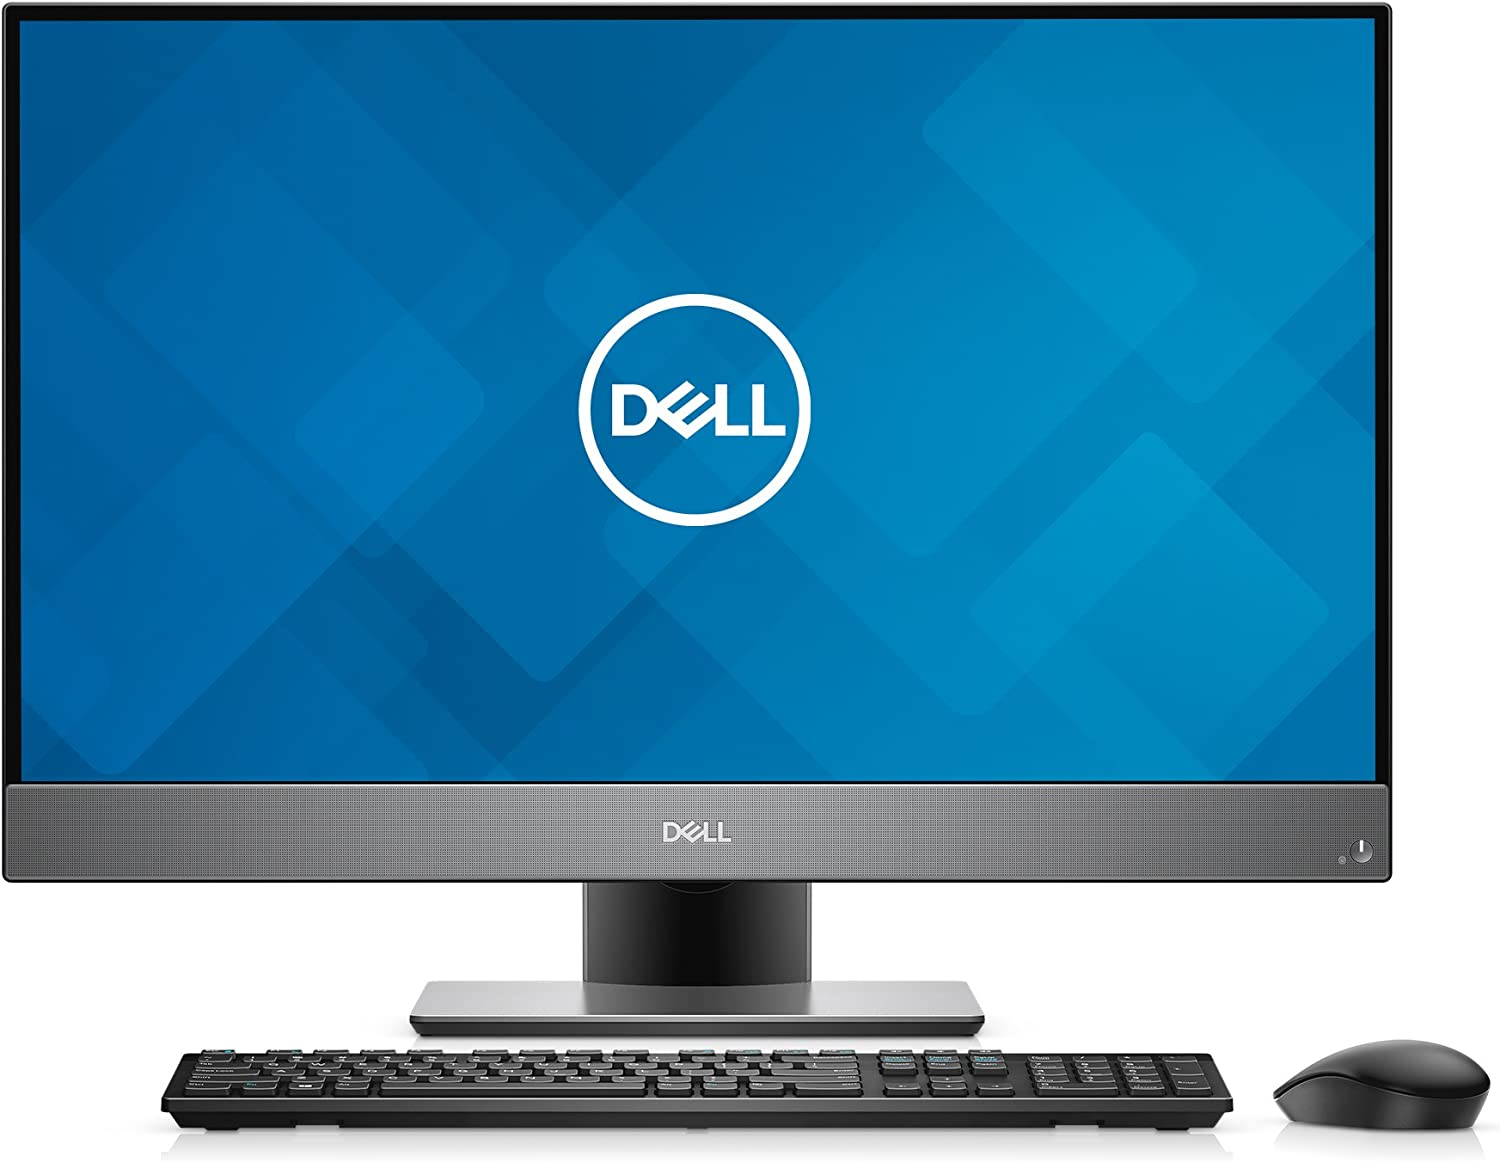 "Dell i7777-5507SLV-PUS Inspiron 27"" Narrow Border Display - 8th Gen Intel Core i5 Processor - 8GB Memory - 1TB Hard Drive UHD Graphics 630, Silver"